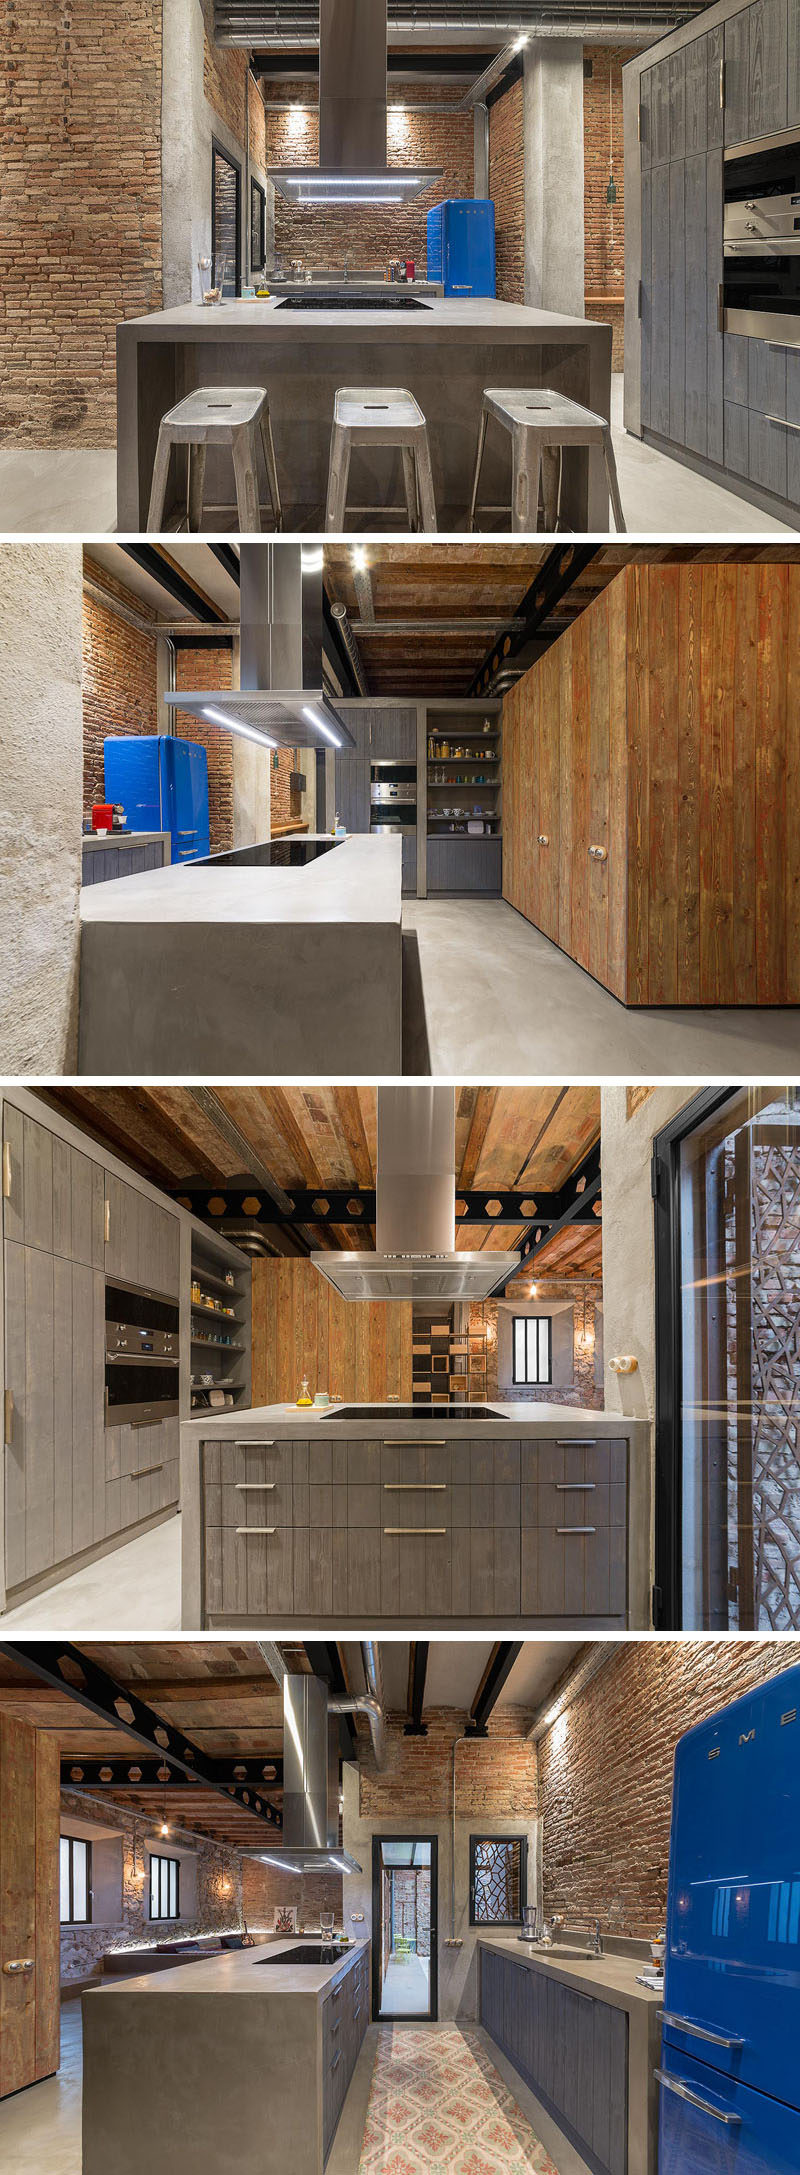 In this kitchen, a large central island provides plenty of counter space, and light gray wood has been paired with concrete to create a contemporary look.